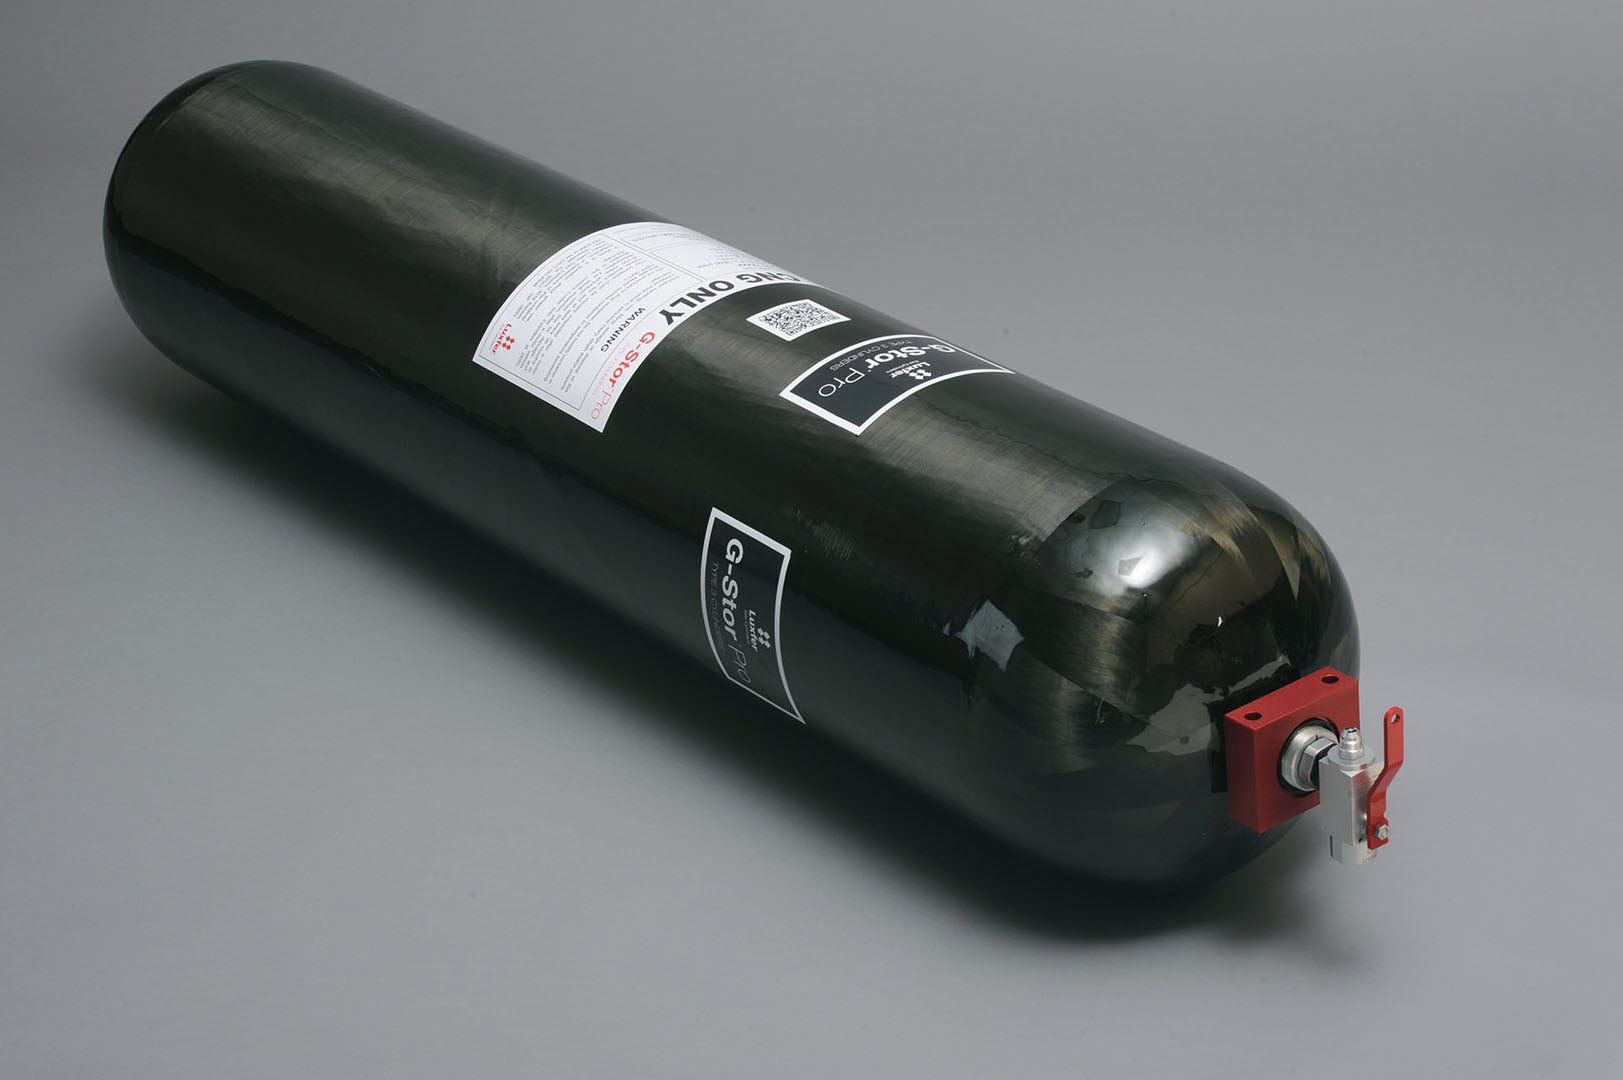 Luxfer Alternative Fuel Cylinder - G-Stor Pro